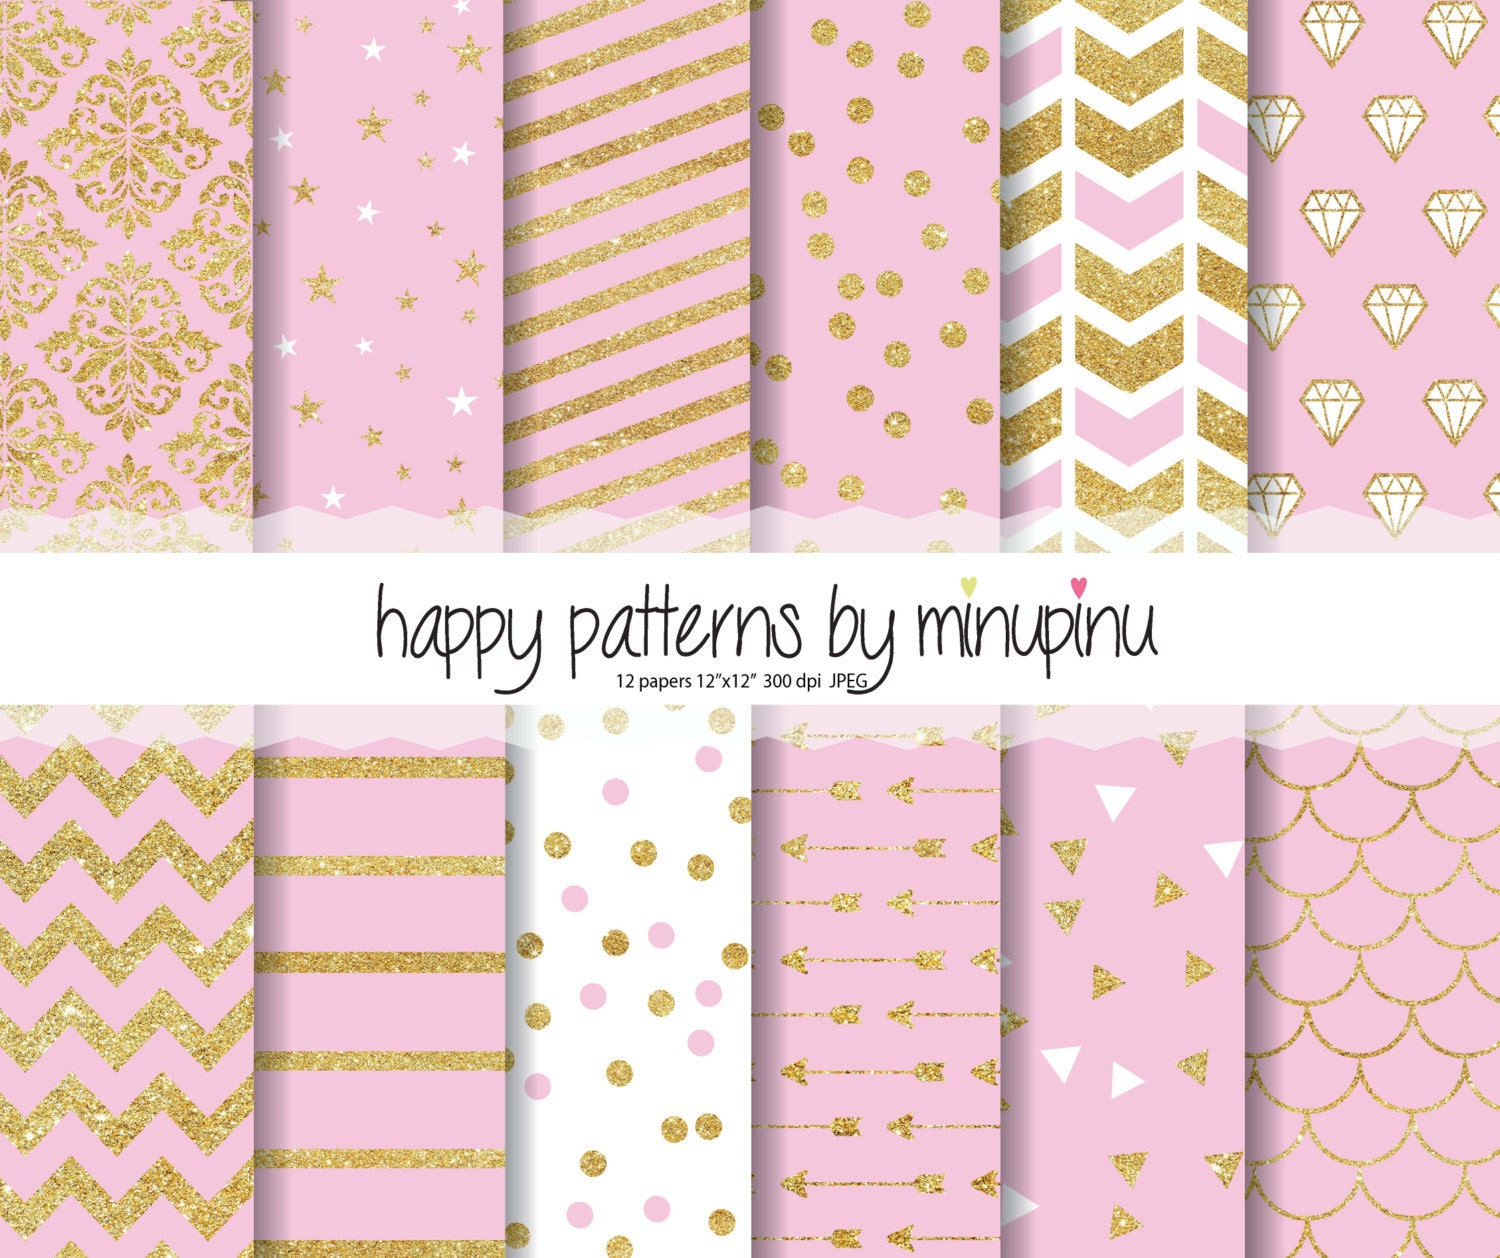 Pink And Gold Glitter Digital Papers Patterns On Background With Stars Diamonds Confetti Chevron Stripes Arrows Damask